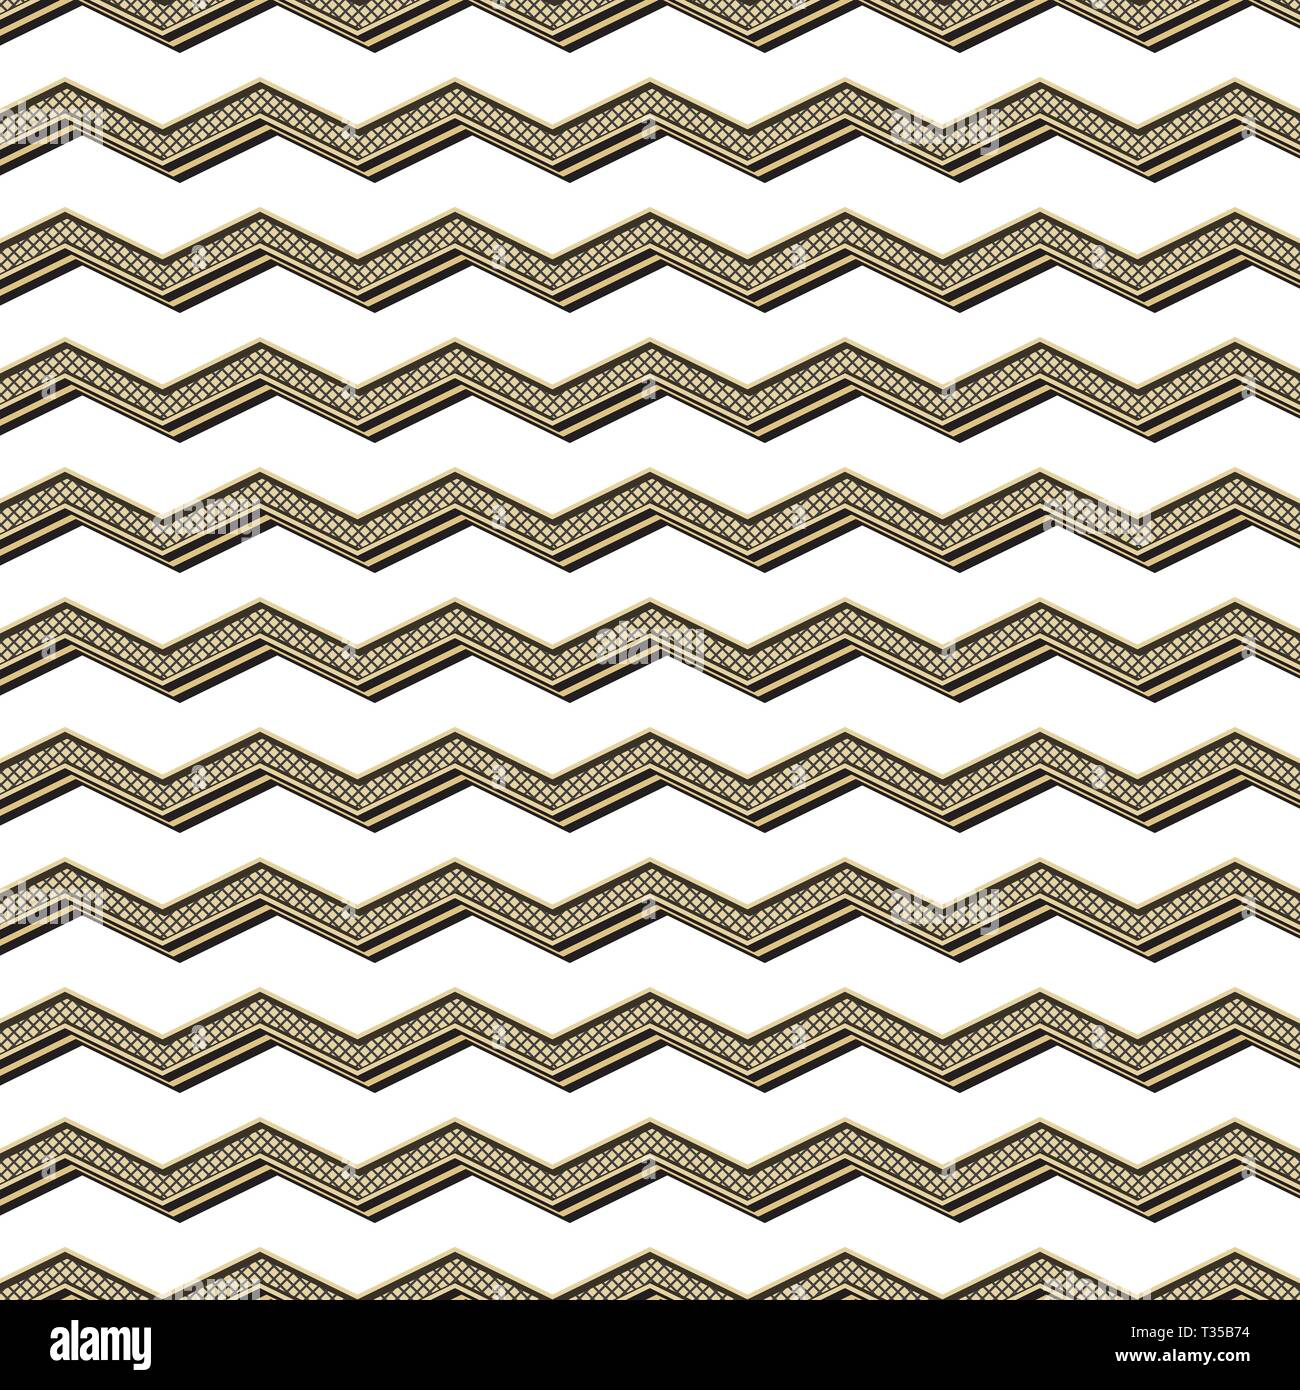 Retro zigzag pattern, abstract geometric background in 80s